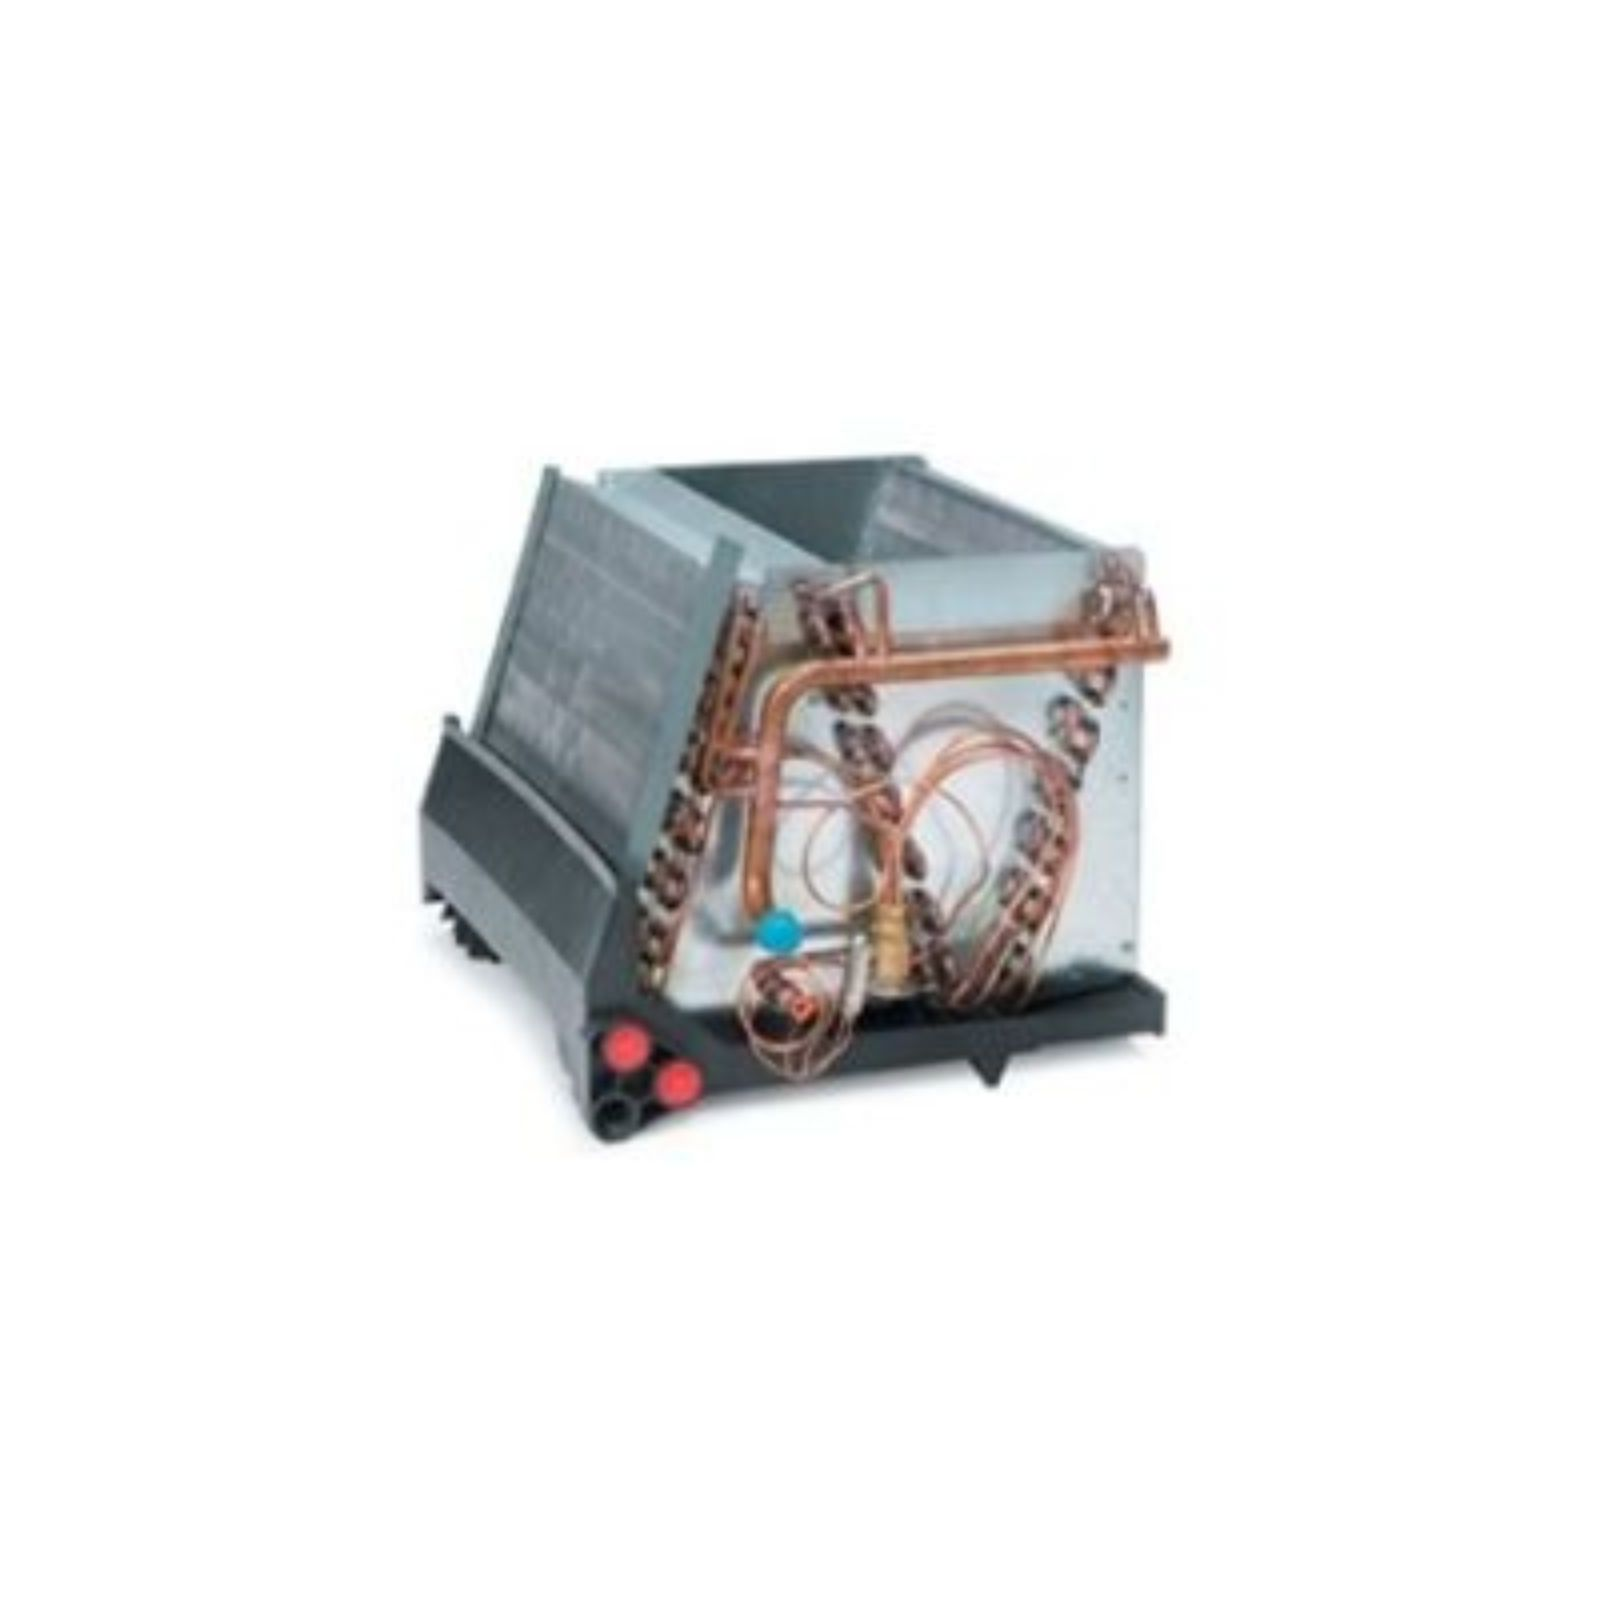 "Rheem RCSM-HU3621AU - 3 Ton 16 SEER 21"" Replacement Upflow/Downflow Uncased Coil - R410A for use in HPL Air Handlers"